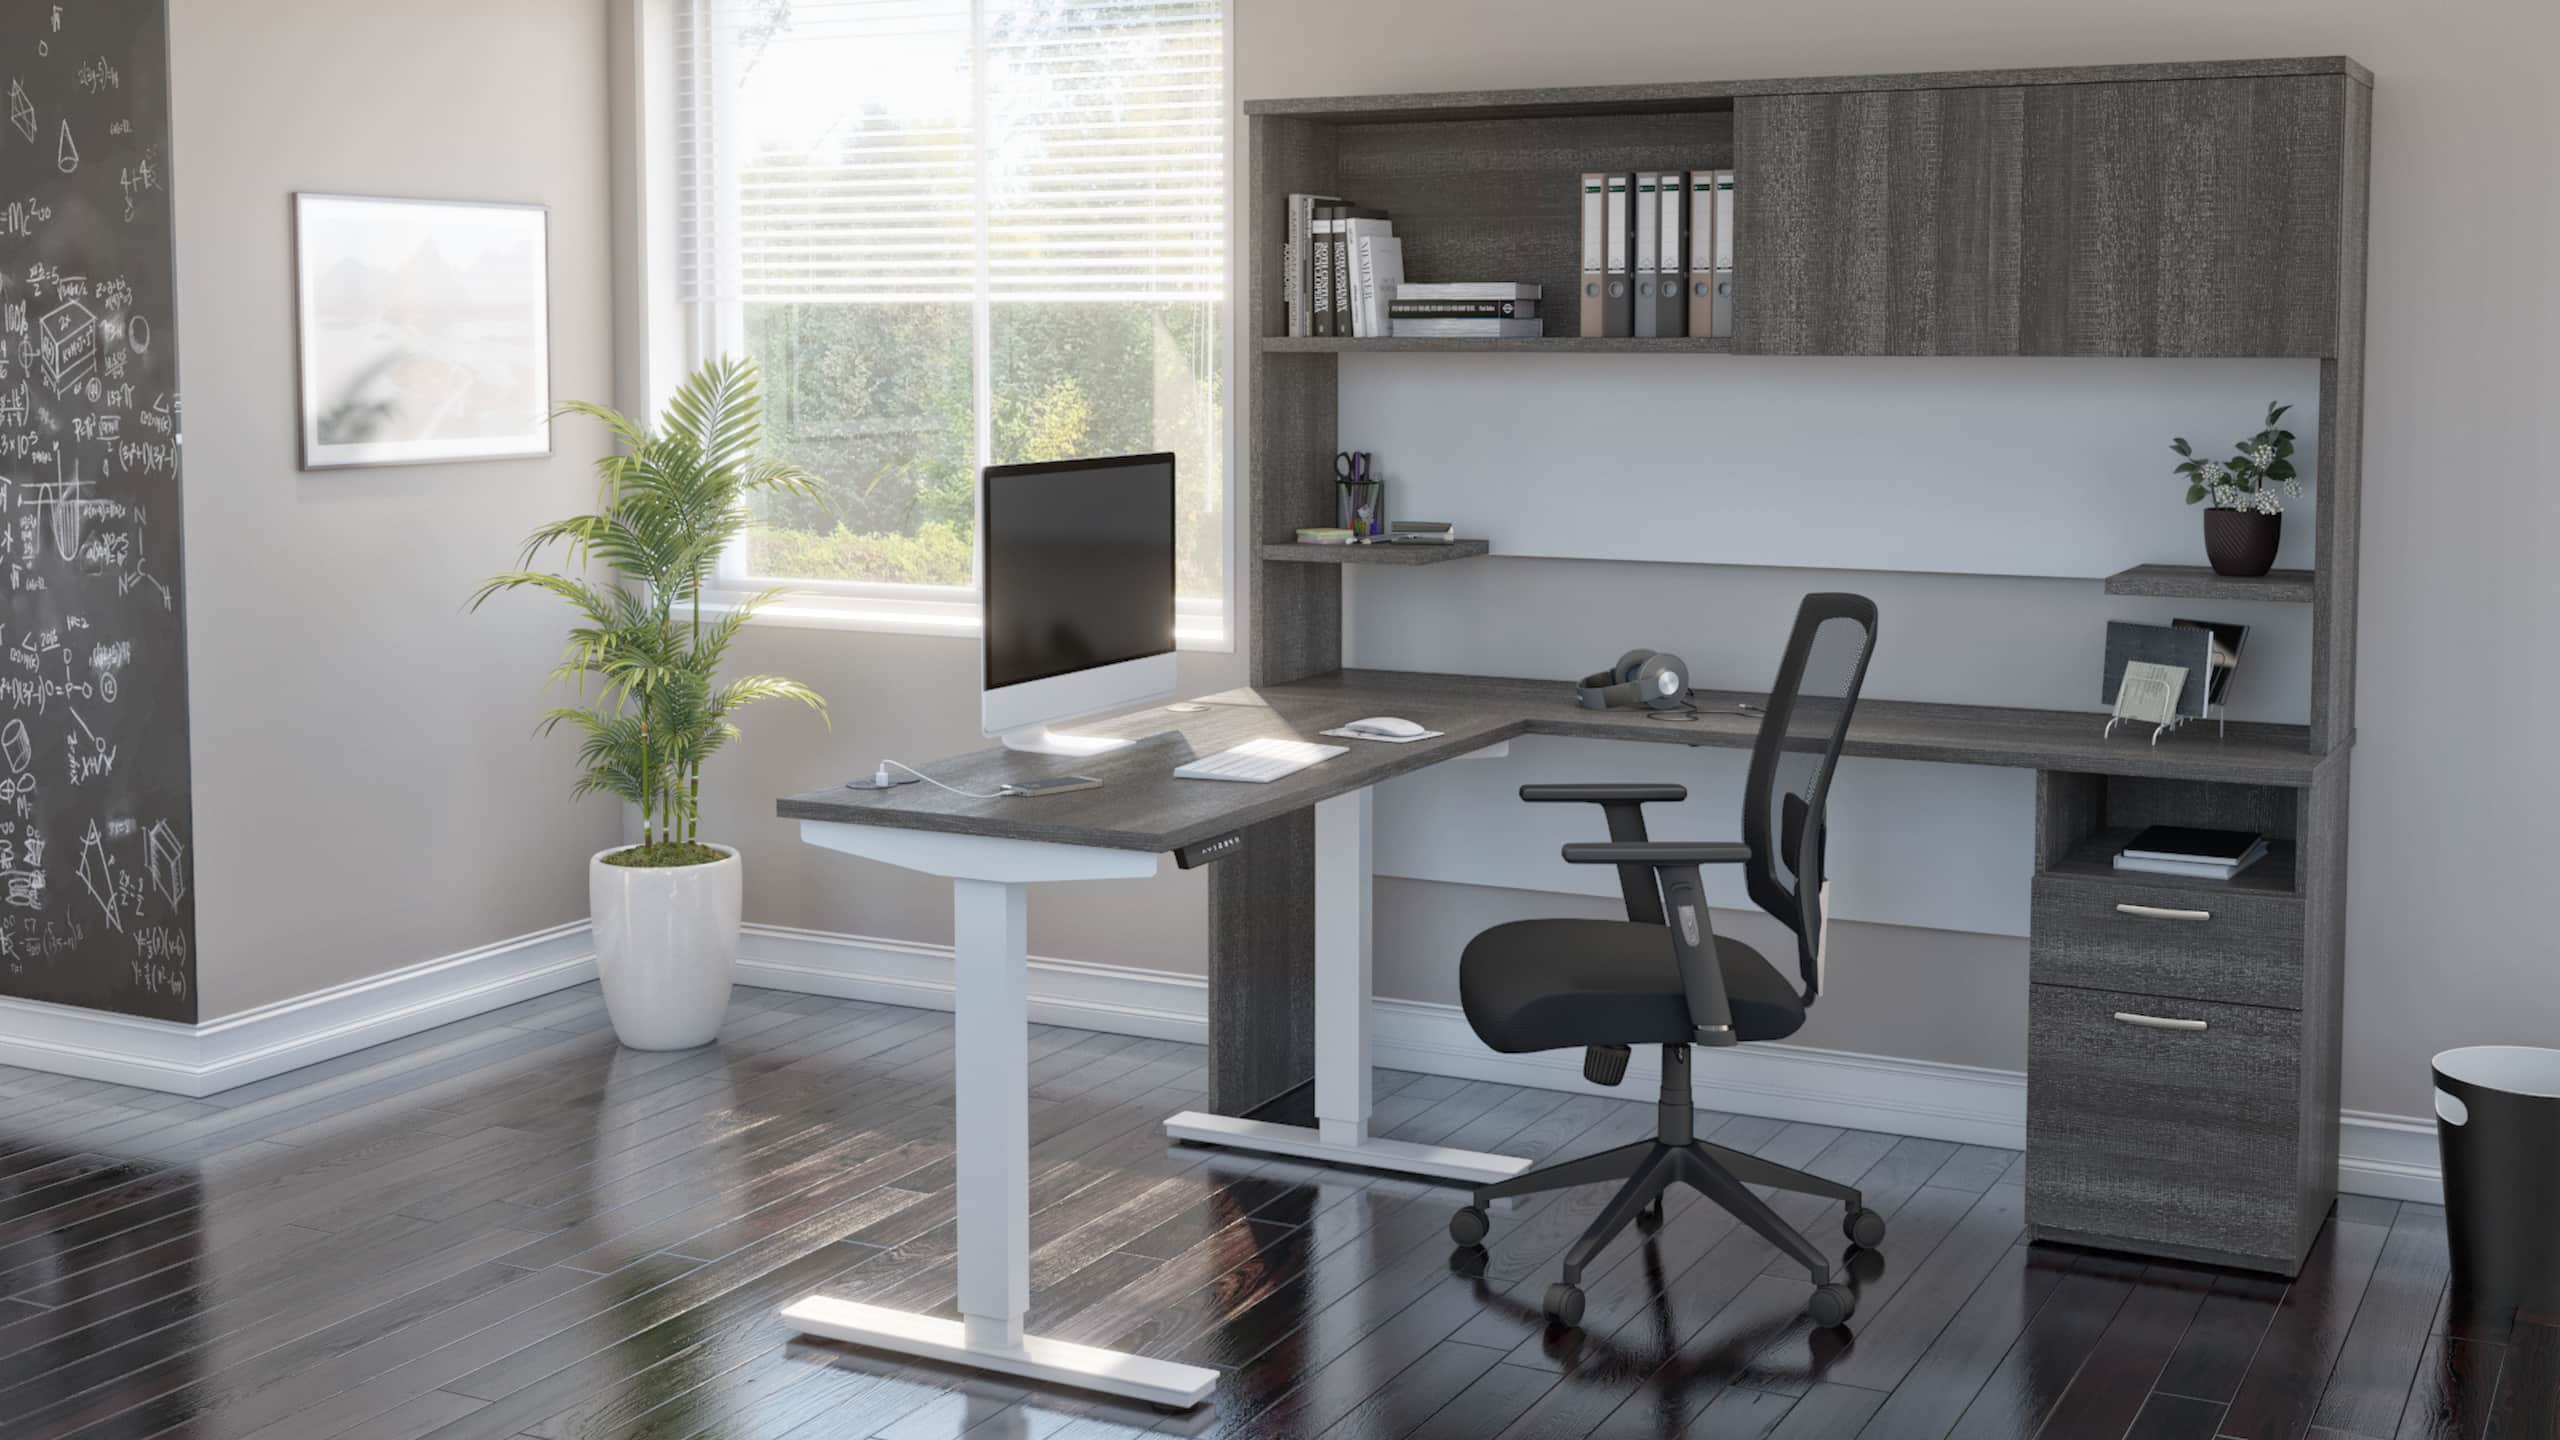 At-Home Office Spaces: How to Make a Standard Desk Height Work for You